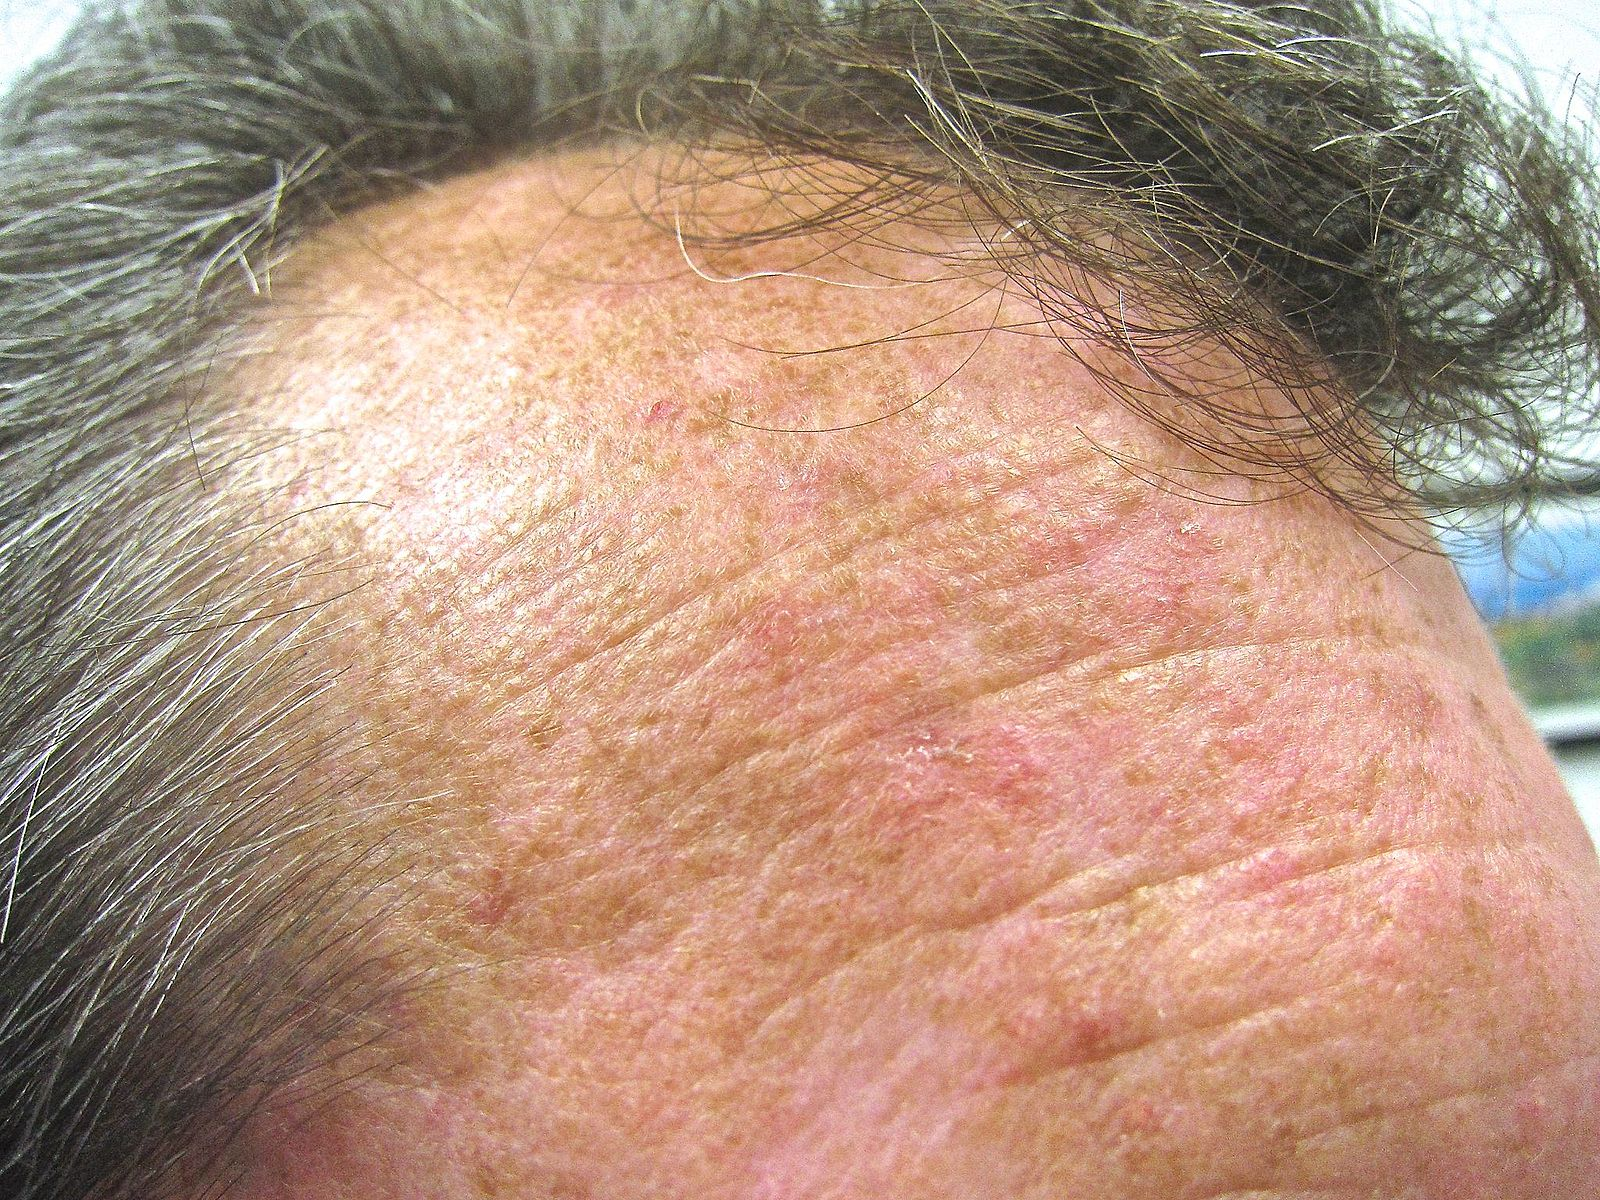 Difference Between Actinic Keratosis and Melanoma